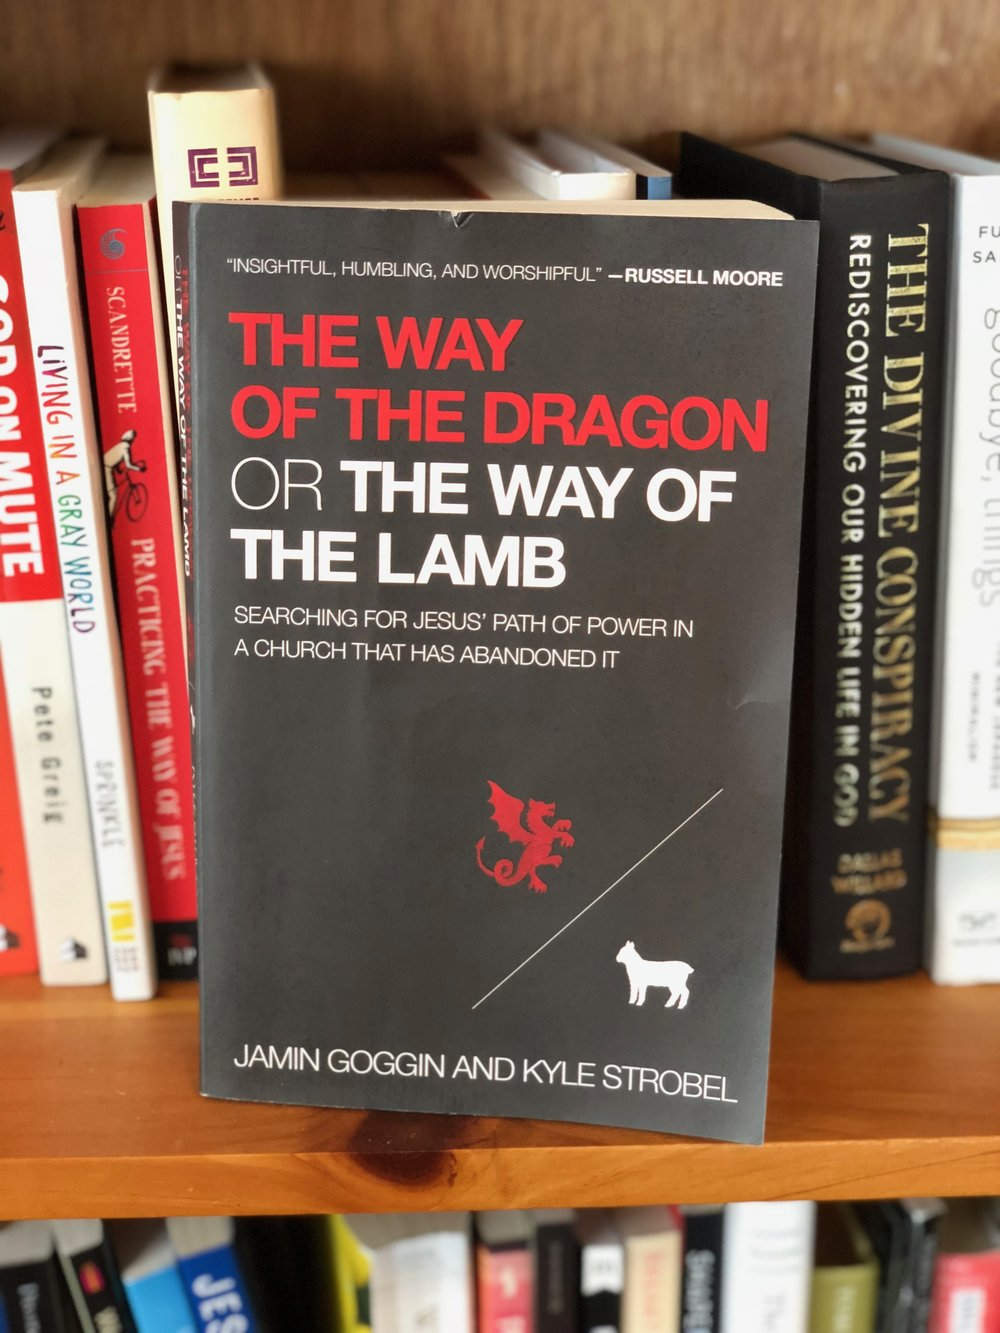 The Way of the Dragon or the Way of the Lamb - Jamin Goggin and Kyle Strobel